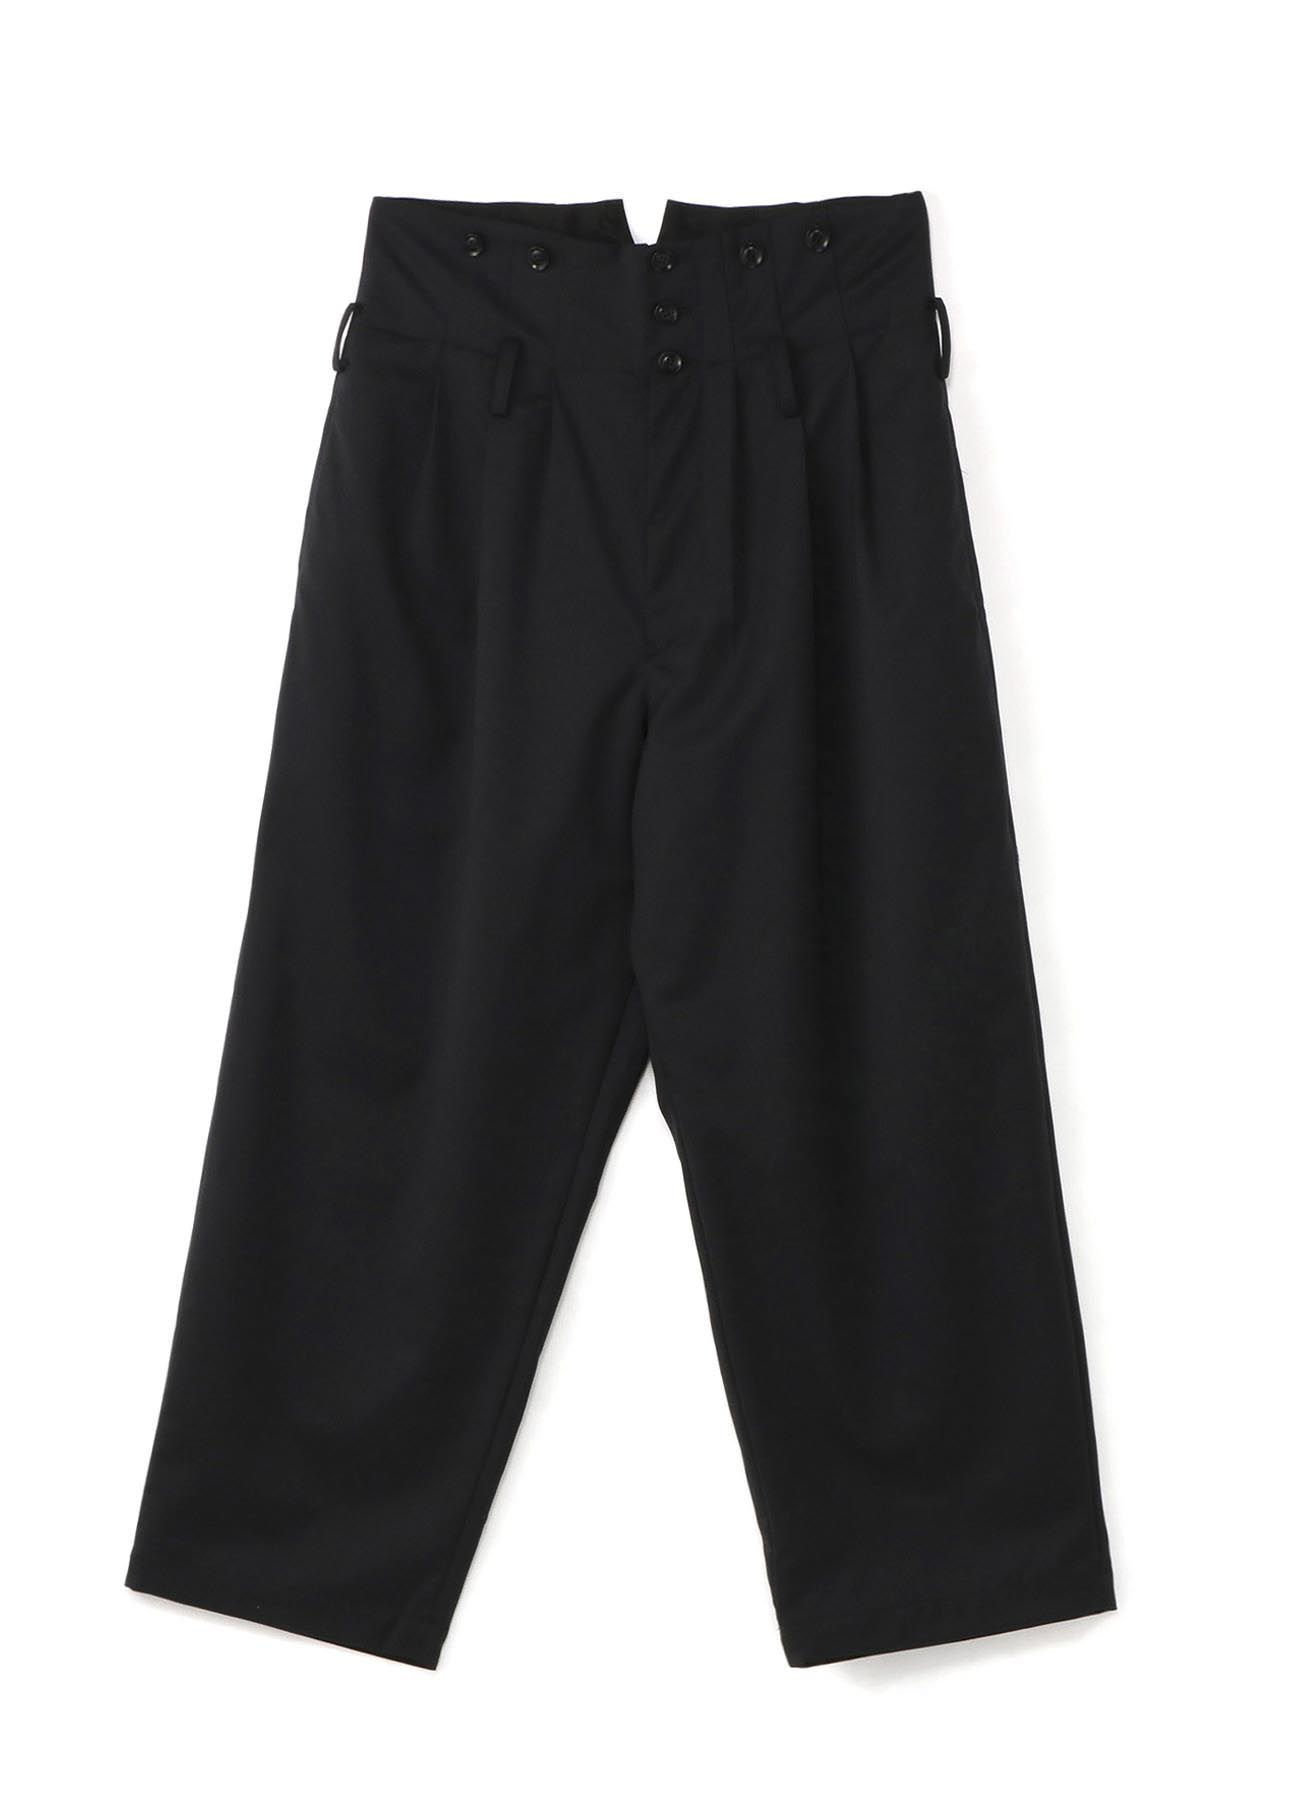 T/W Twill 3Tuck High Waist Wide Suspenders Pants